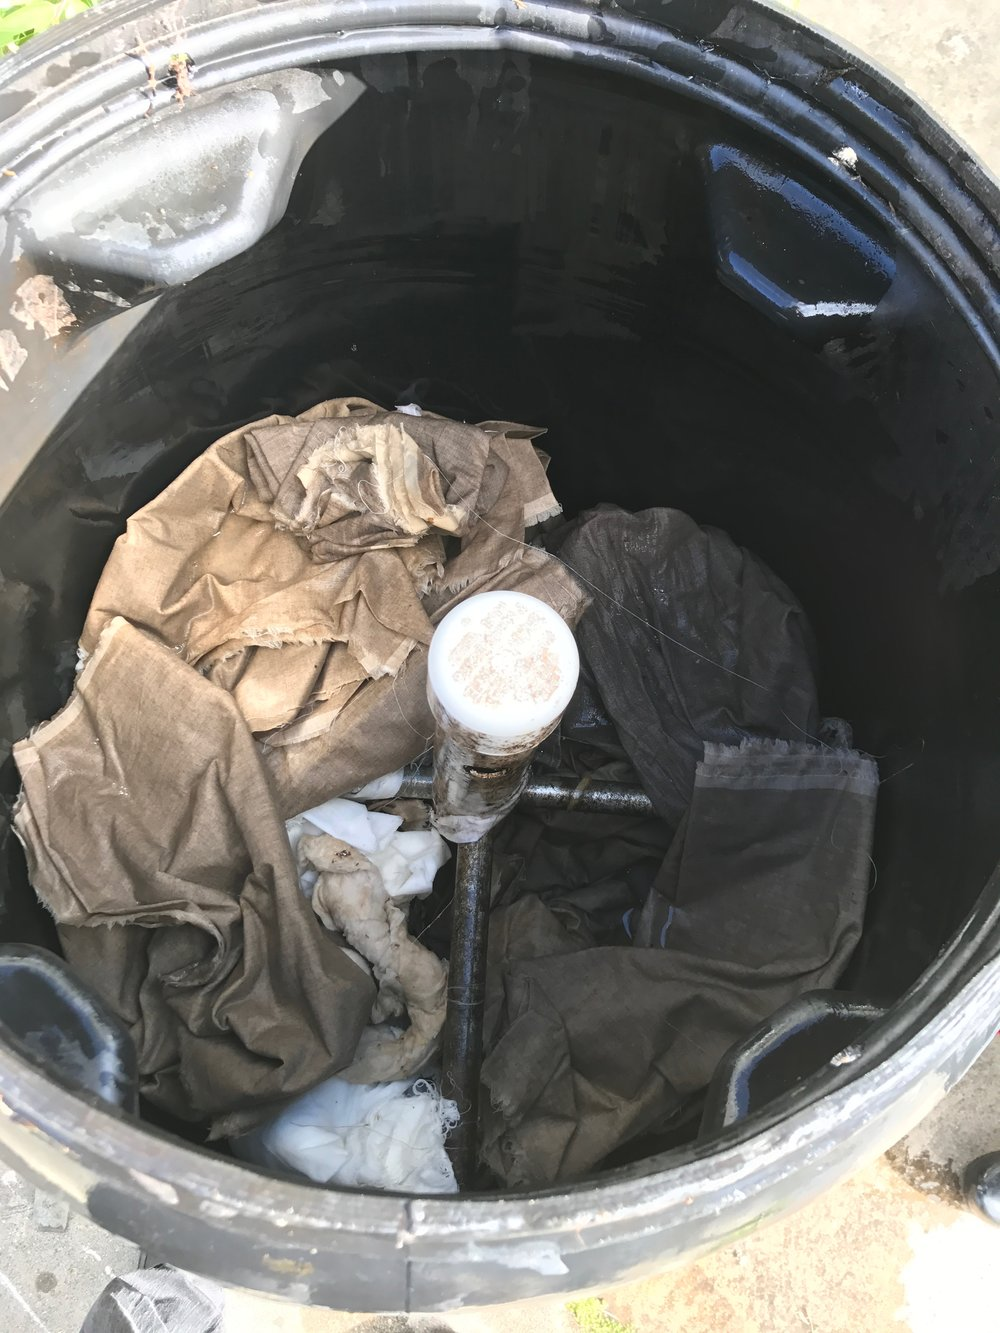 Rags retting in compost bin